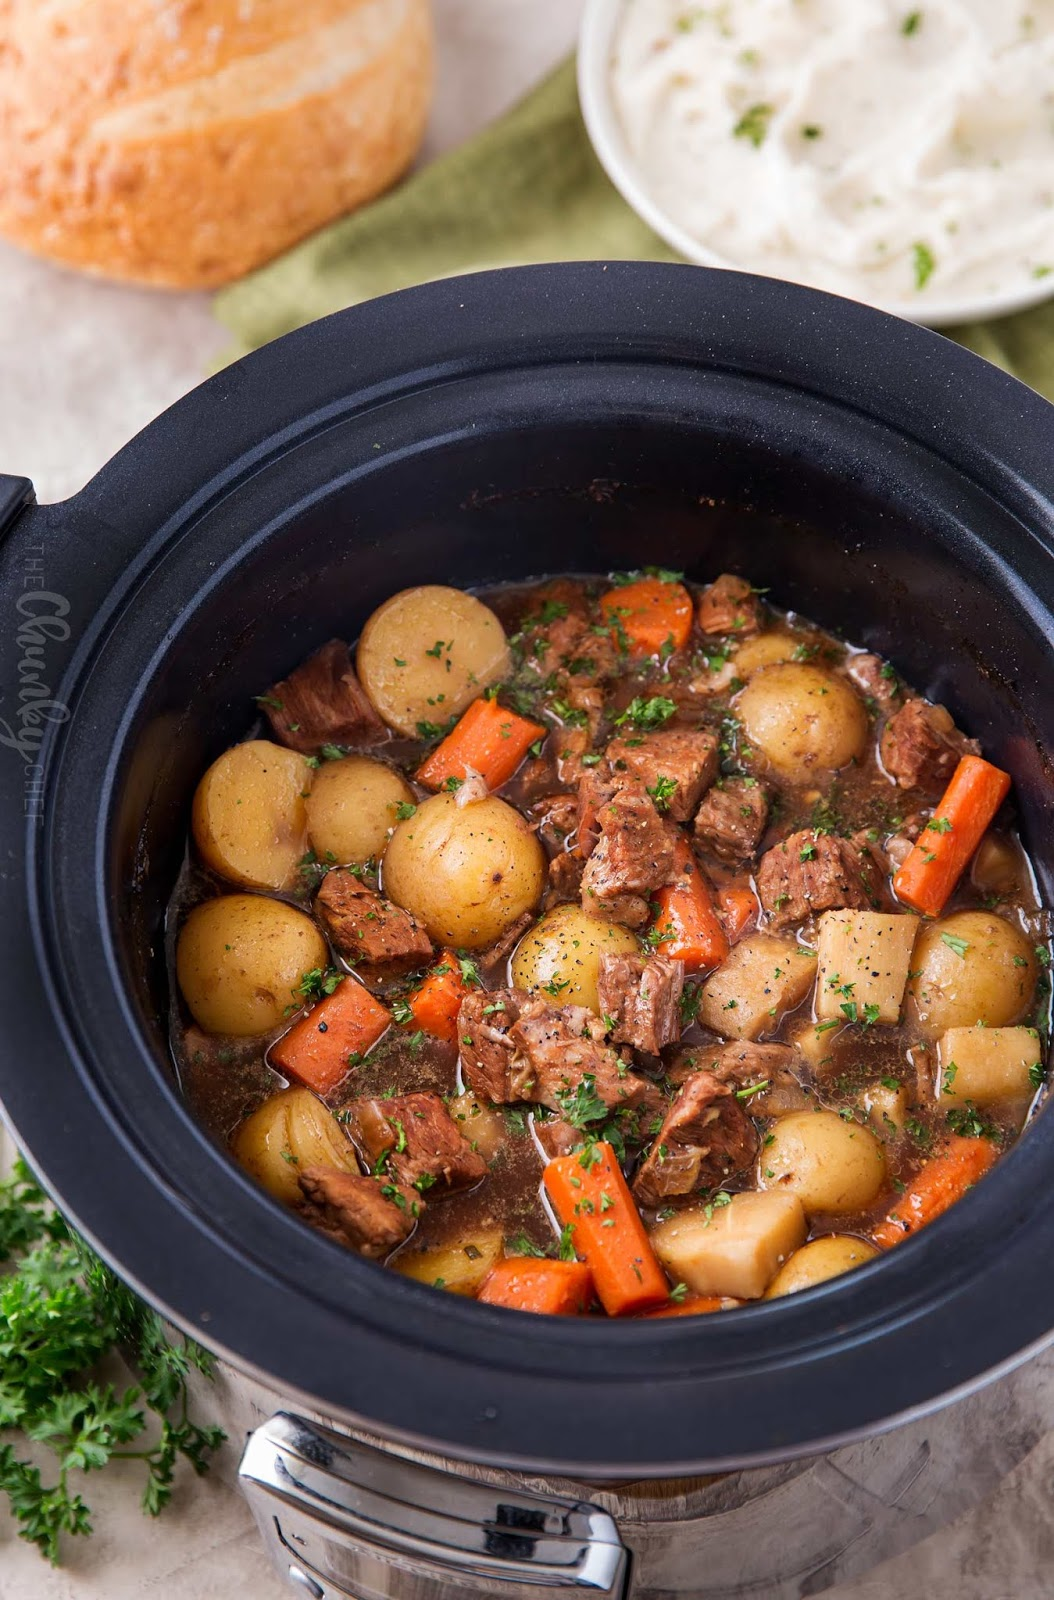 BEER AND HORSERADISH SLOW COOKER BEEF STEW #cooker #beef #meals #healthydinner #familydinner